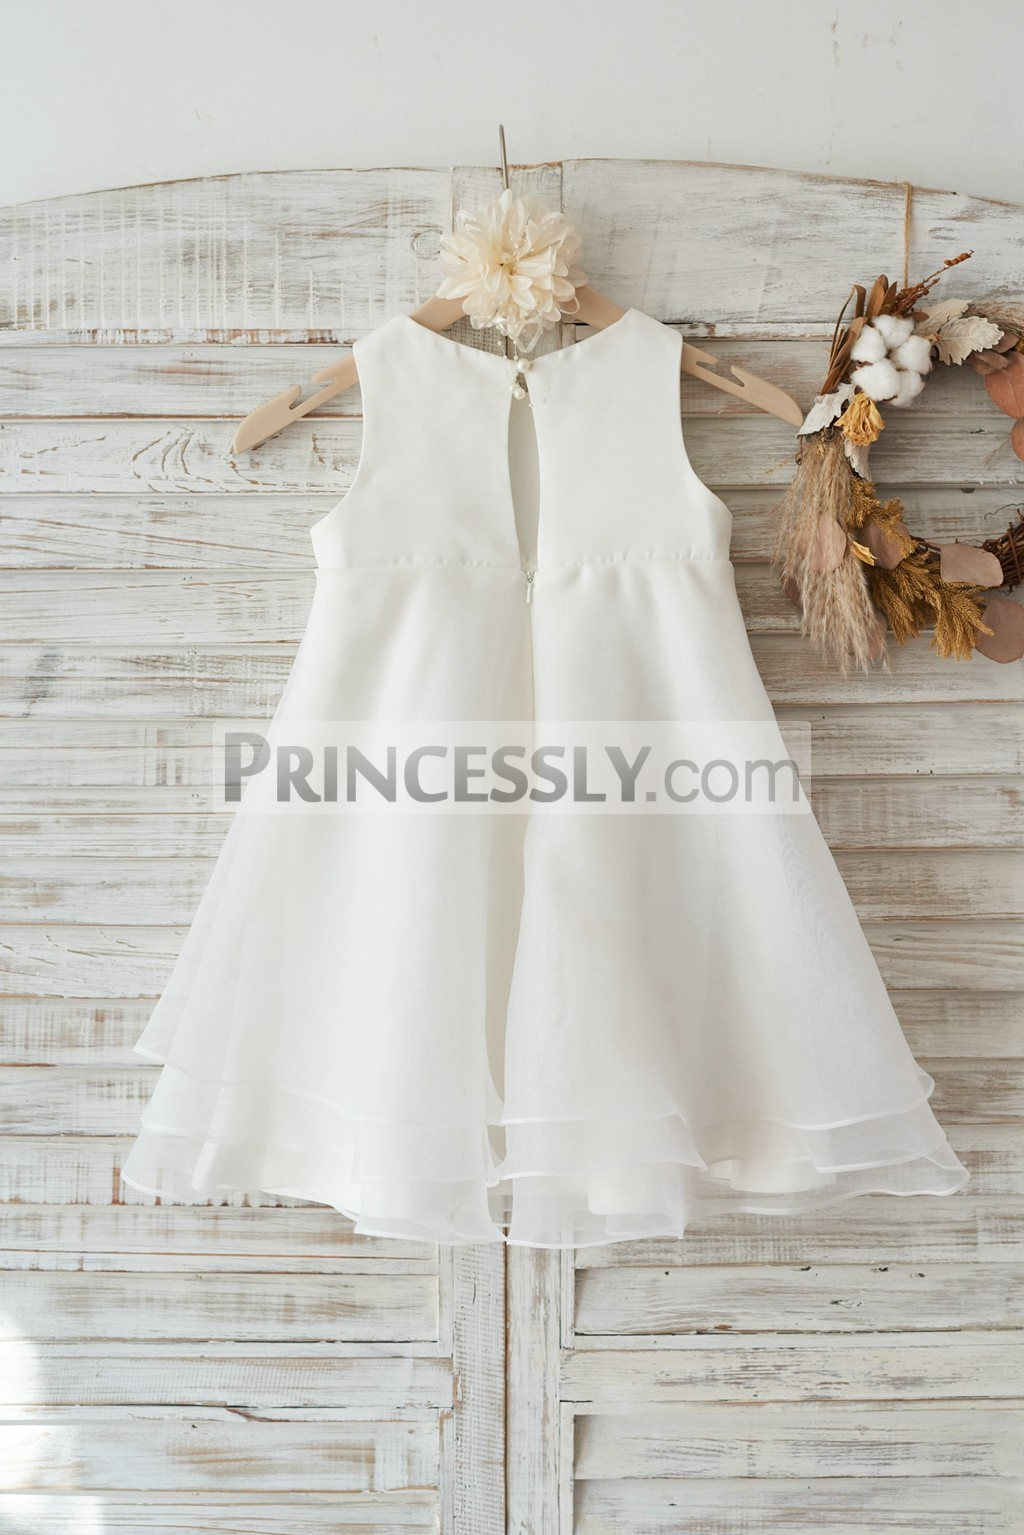 Slit back with a pearl ivory satin organza wedding baby girl dress